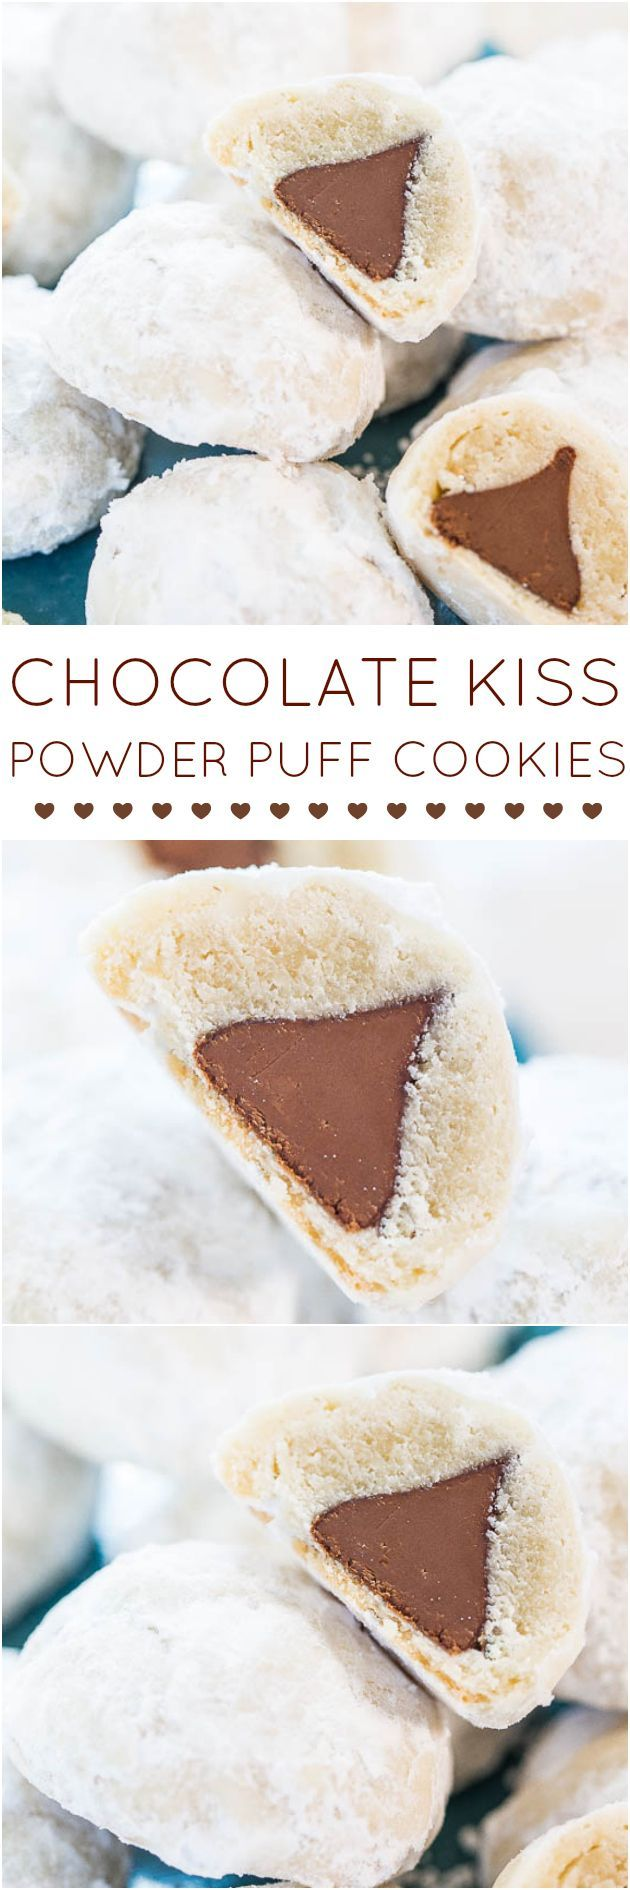 Chocolate Kiss Powder Puff Cookies - Easiest cookies ever with only 3 ingredients! The Kiss in the middle makes everyone smile!! So fun!!: